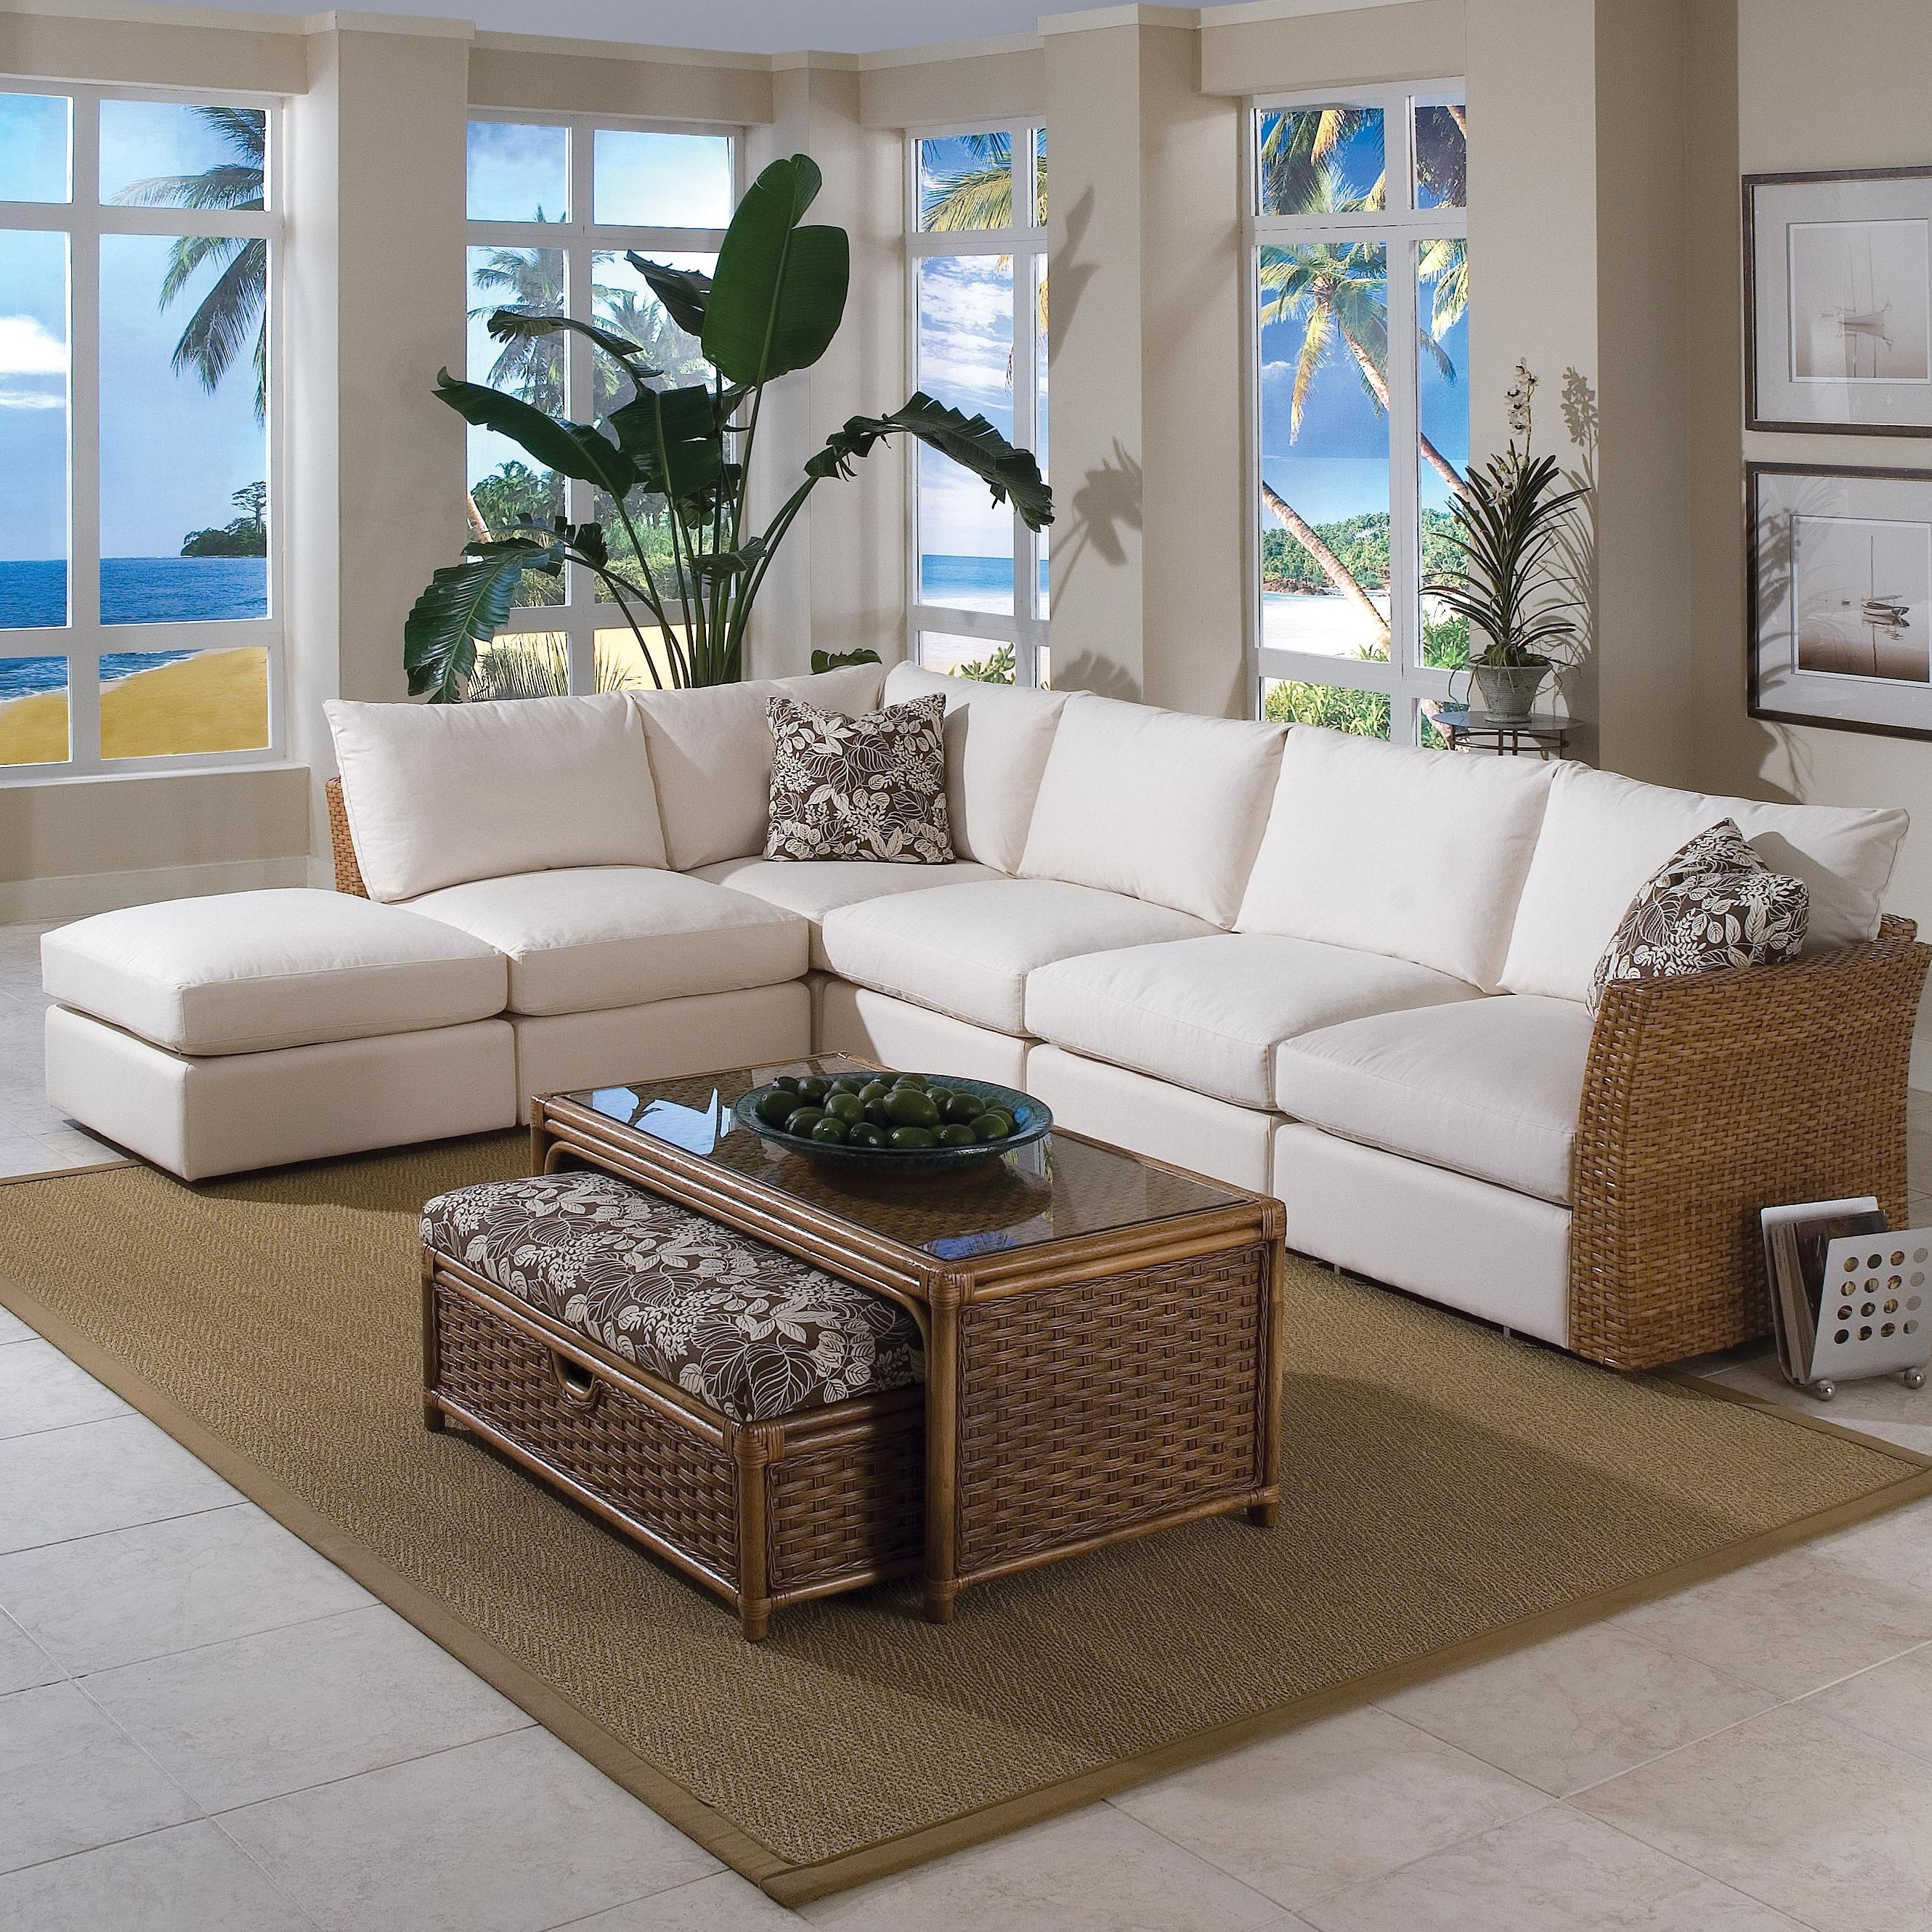 Charming Sectional Sofas Havertys 99 For Your L Shaped Sectional throughout Sectional Sofas at Havertys (Image 3 of 15)